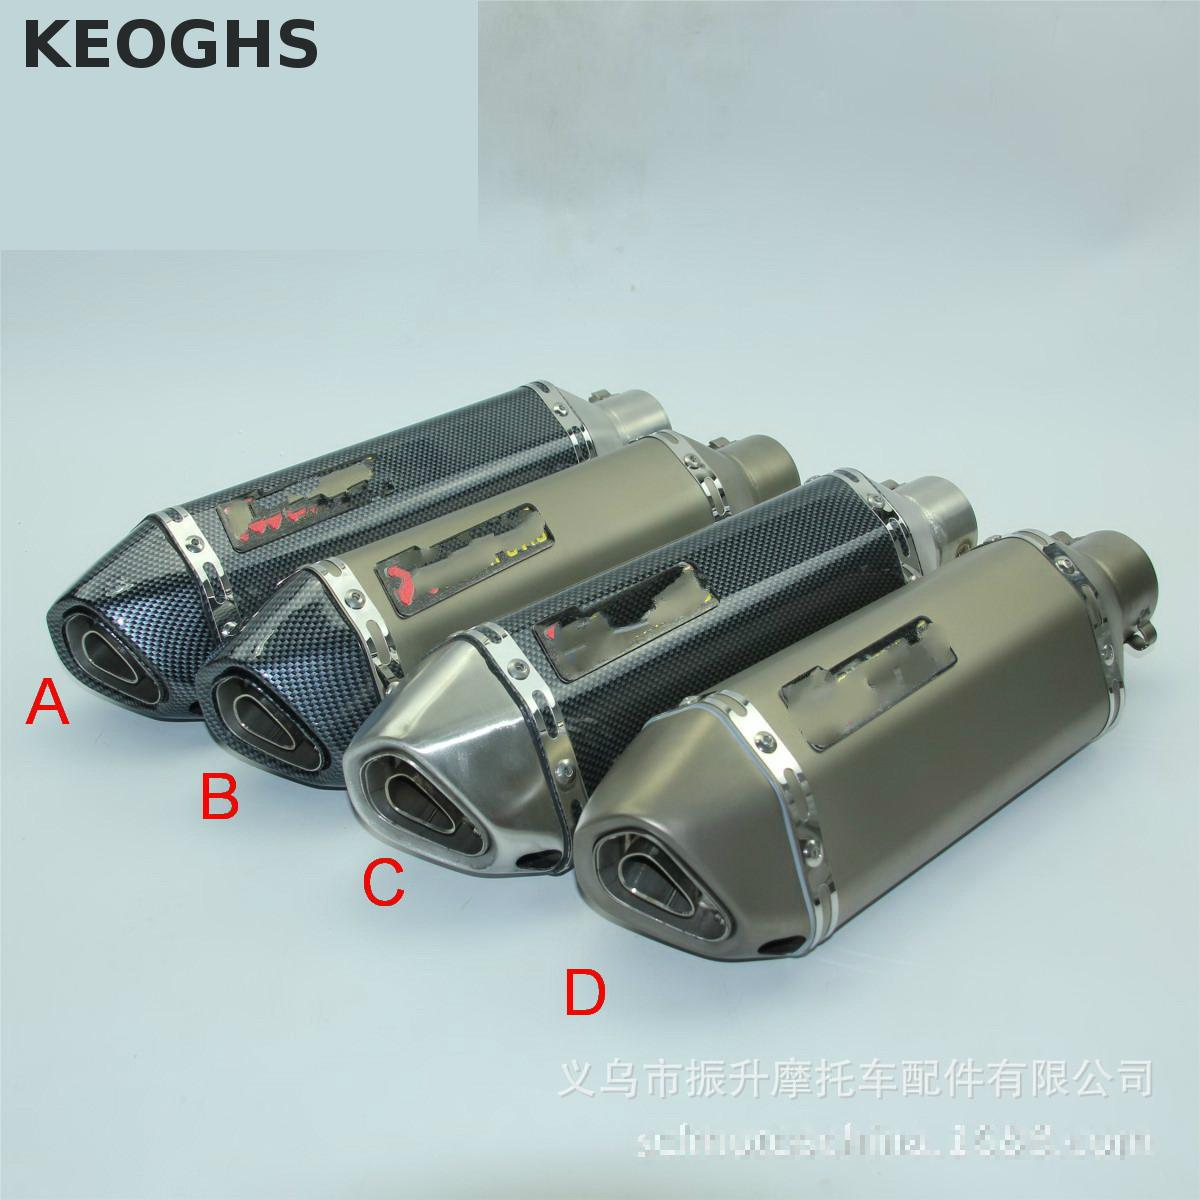 Keoghs Universal Motorcycle Modified Scooter Exhaust Muffle Pipe Gy6 Cbr Cbr125 Cbr250 Cb400 Cb600 Yzf Fz400 Z750 Nice Sound universal gy6 motorcycle scooter modified muffler exhaust pipe cbr 125 250 cb400 cb600 yzf fz400 z750 racing fit most motorcycle